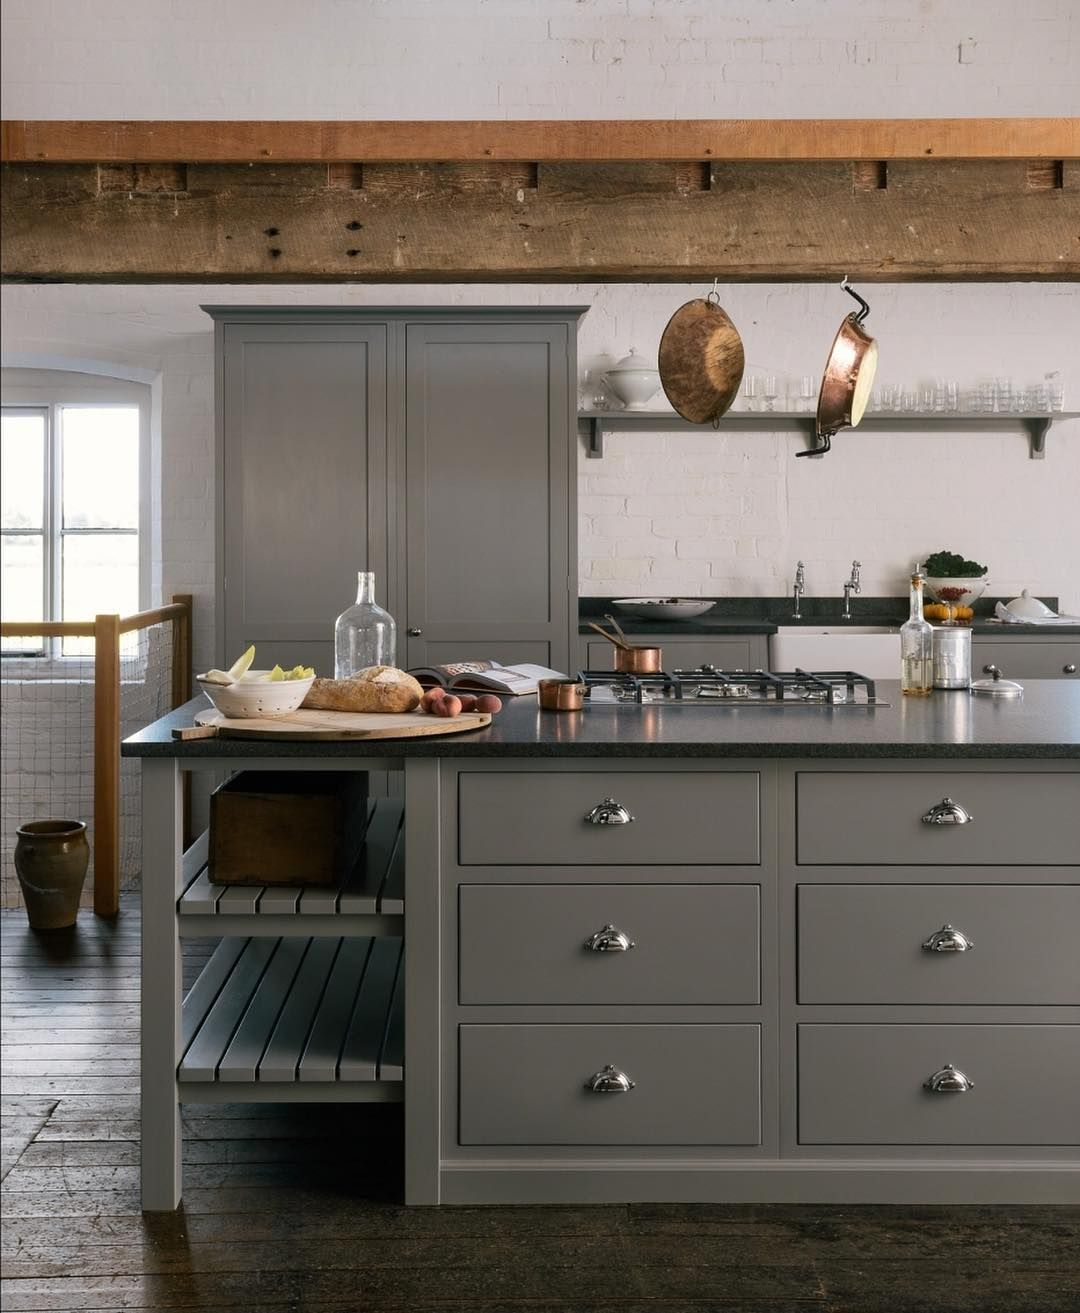 Galley Kitchen Ideas That Work For Rooms Of All Sizes: What A Lovely Idea, To Have Your Hob In Your Central